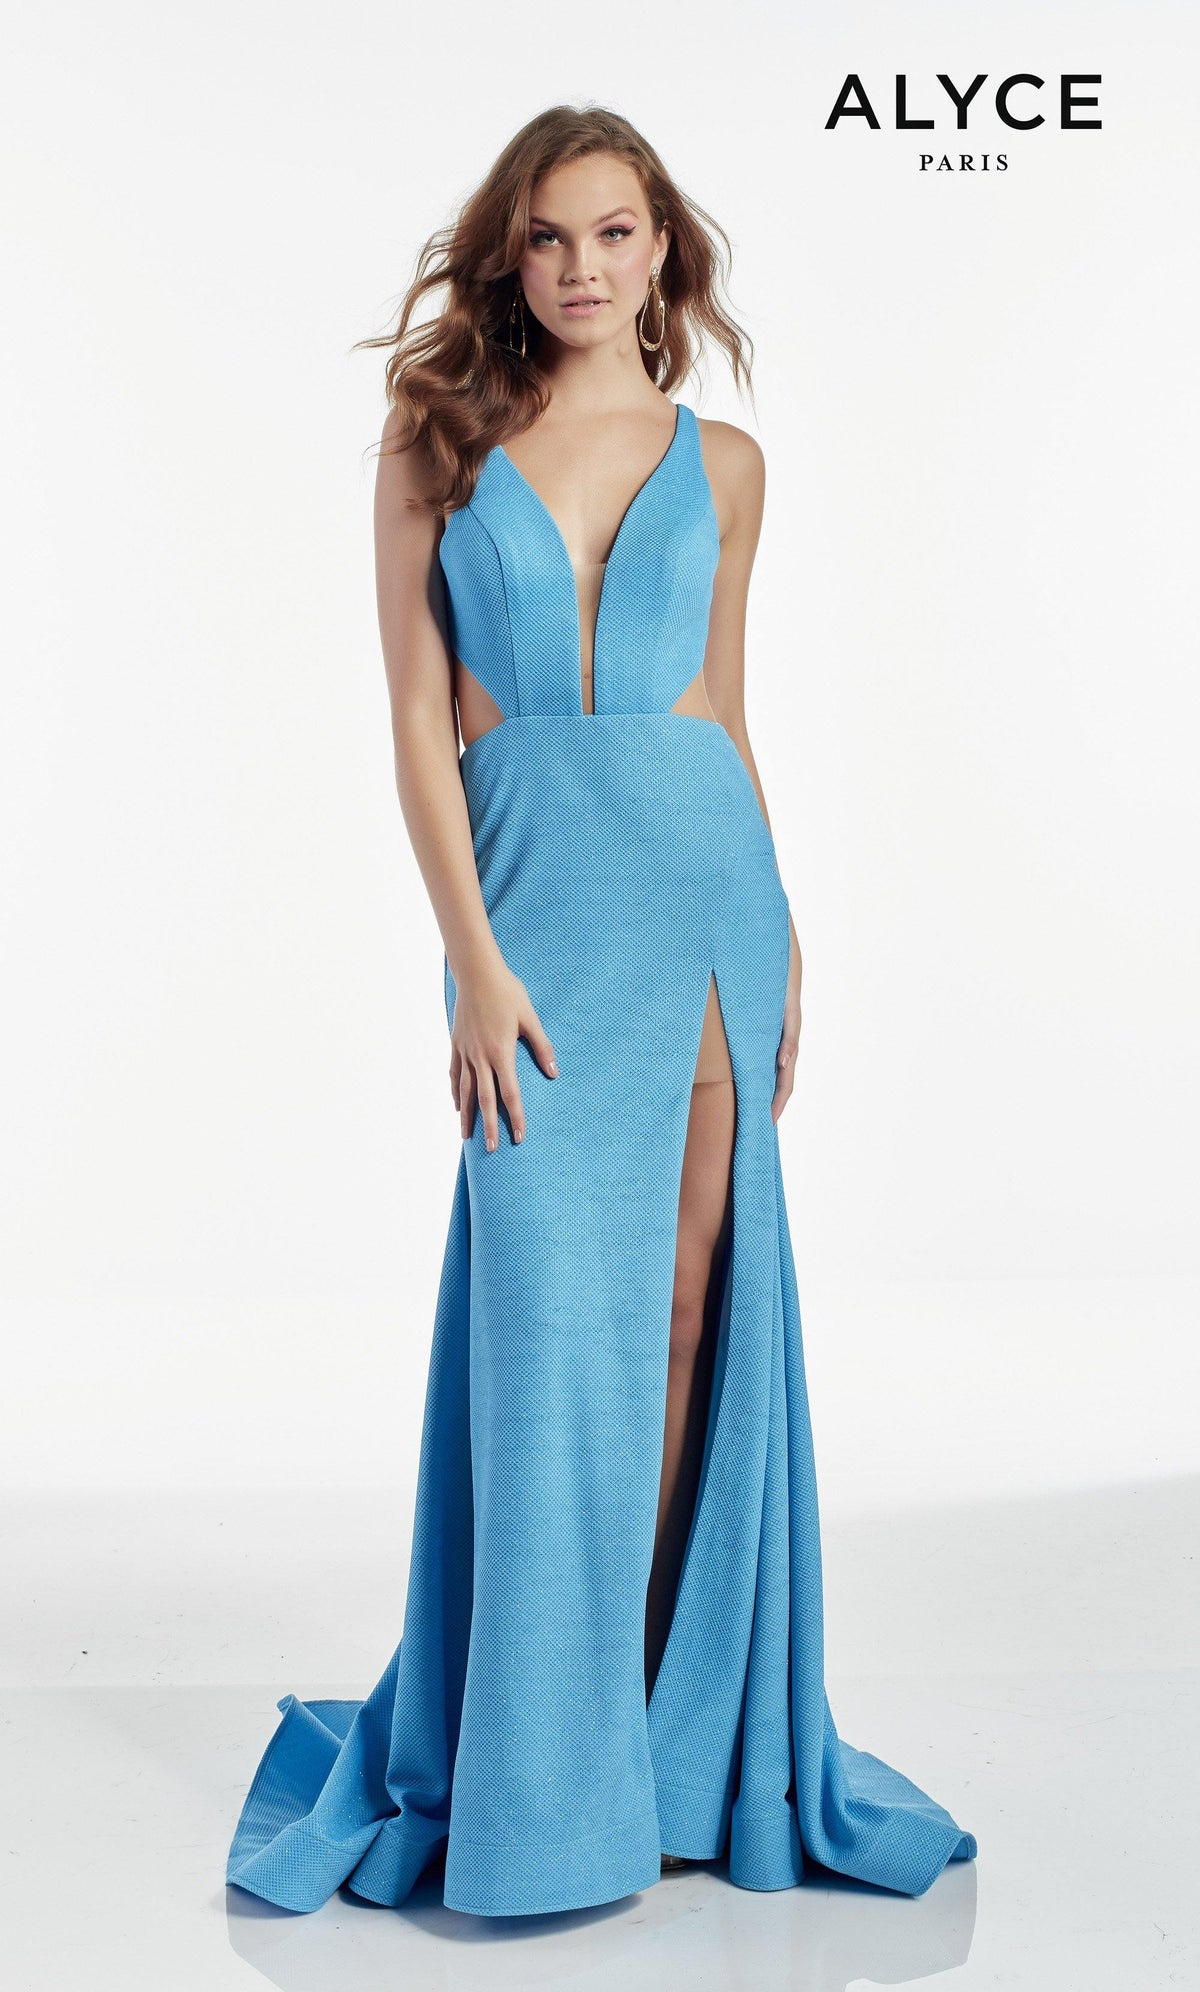 Ocean Blue wedding guest dress with a plunging neckline and a front slit